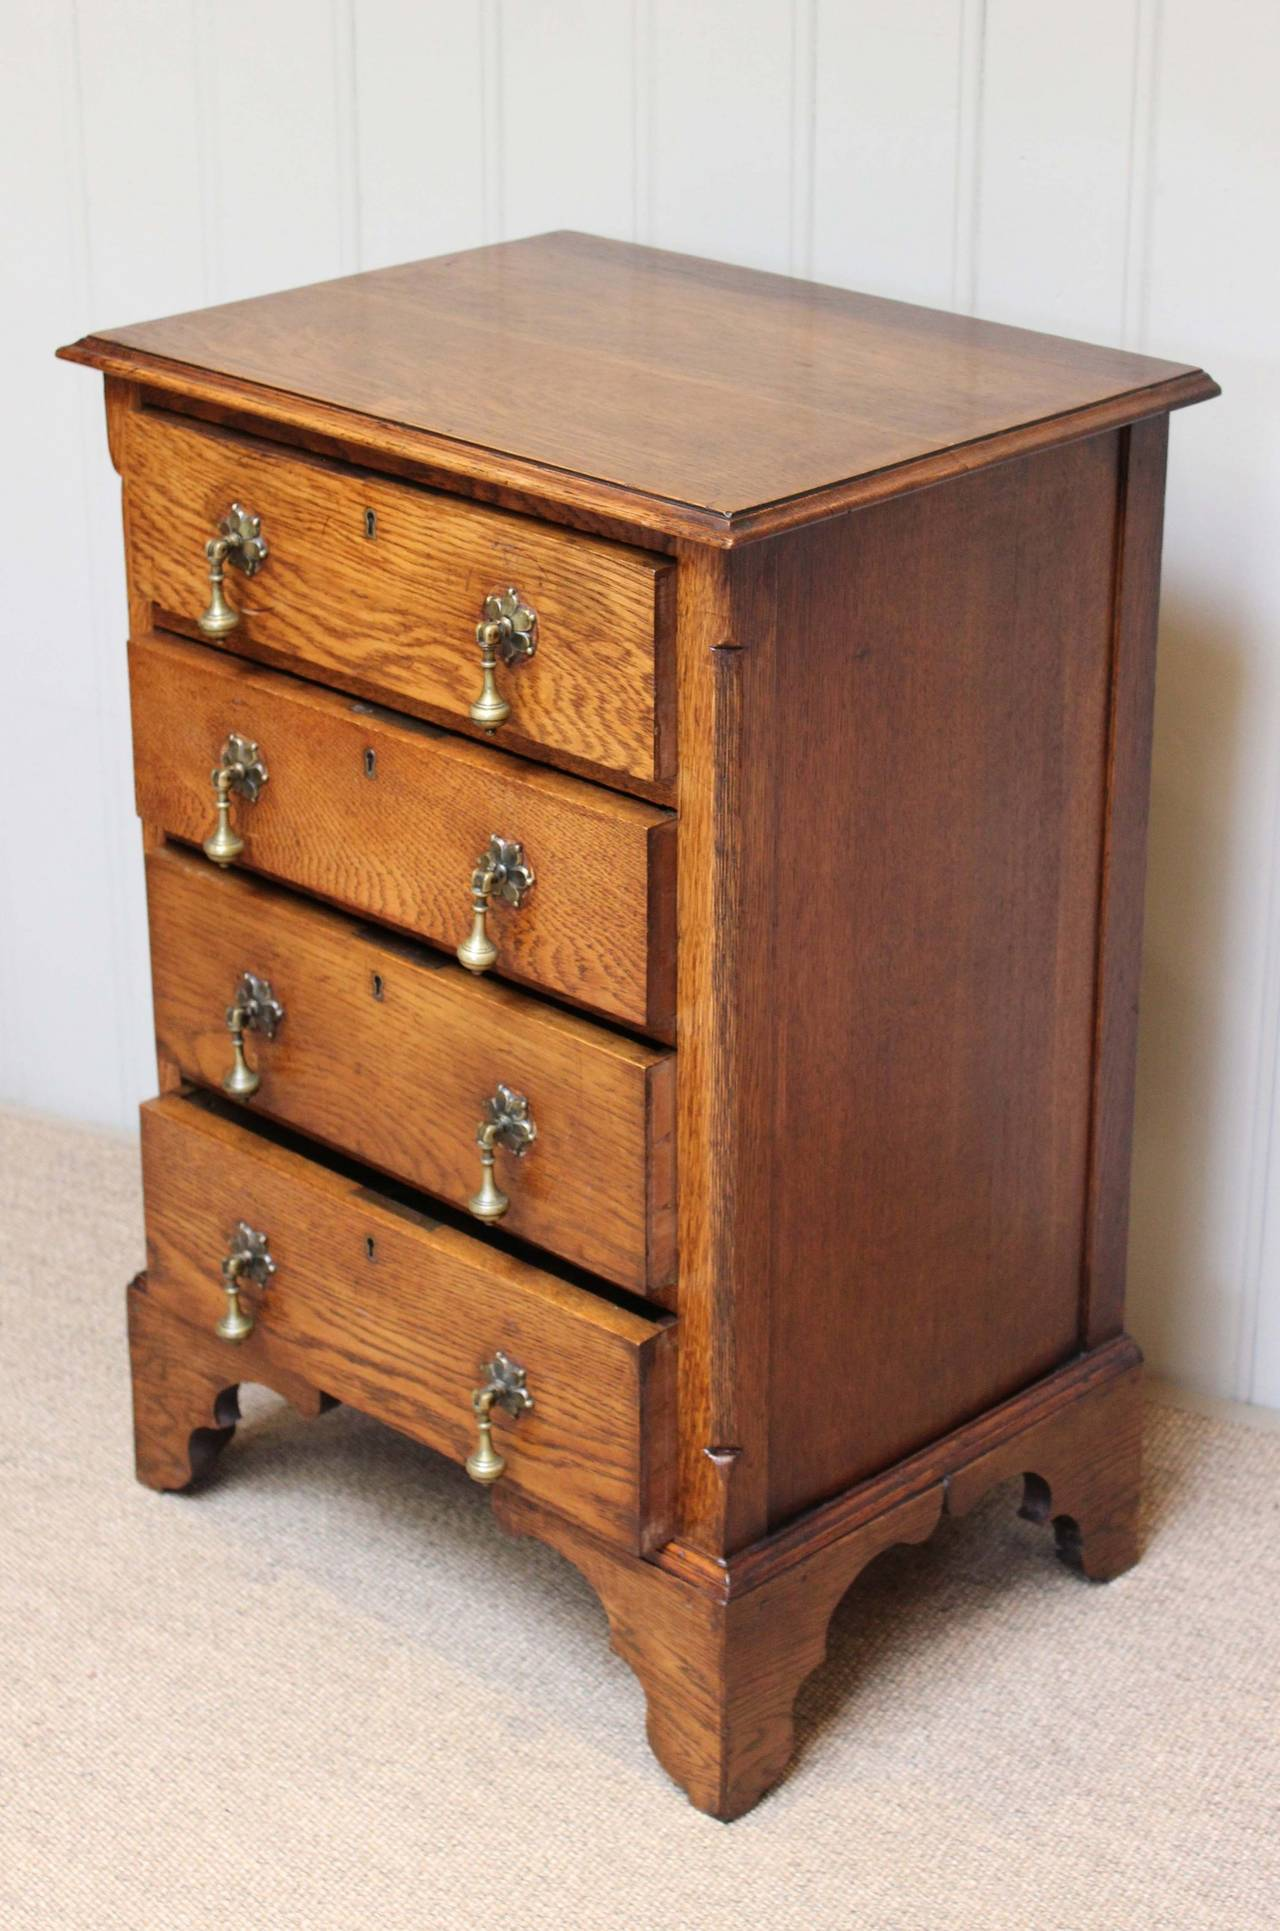 #AB5120 Small Proportioned Solid Oak Chest Of Drawers At 1stdibs with 1280x1931 px of Most Effective Low Height Chest Of Drawers 19311280 wallpaper @ avoidforclosure.info